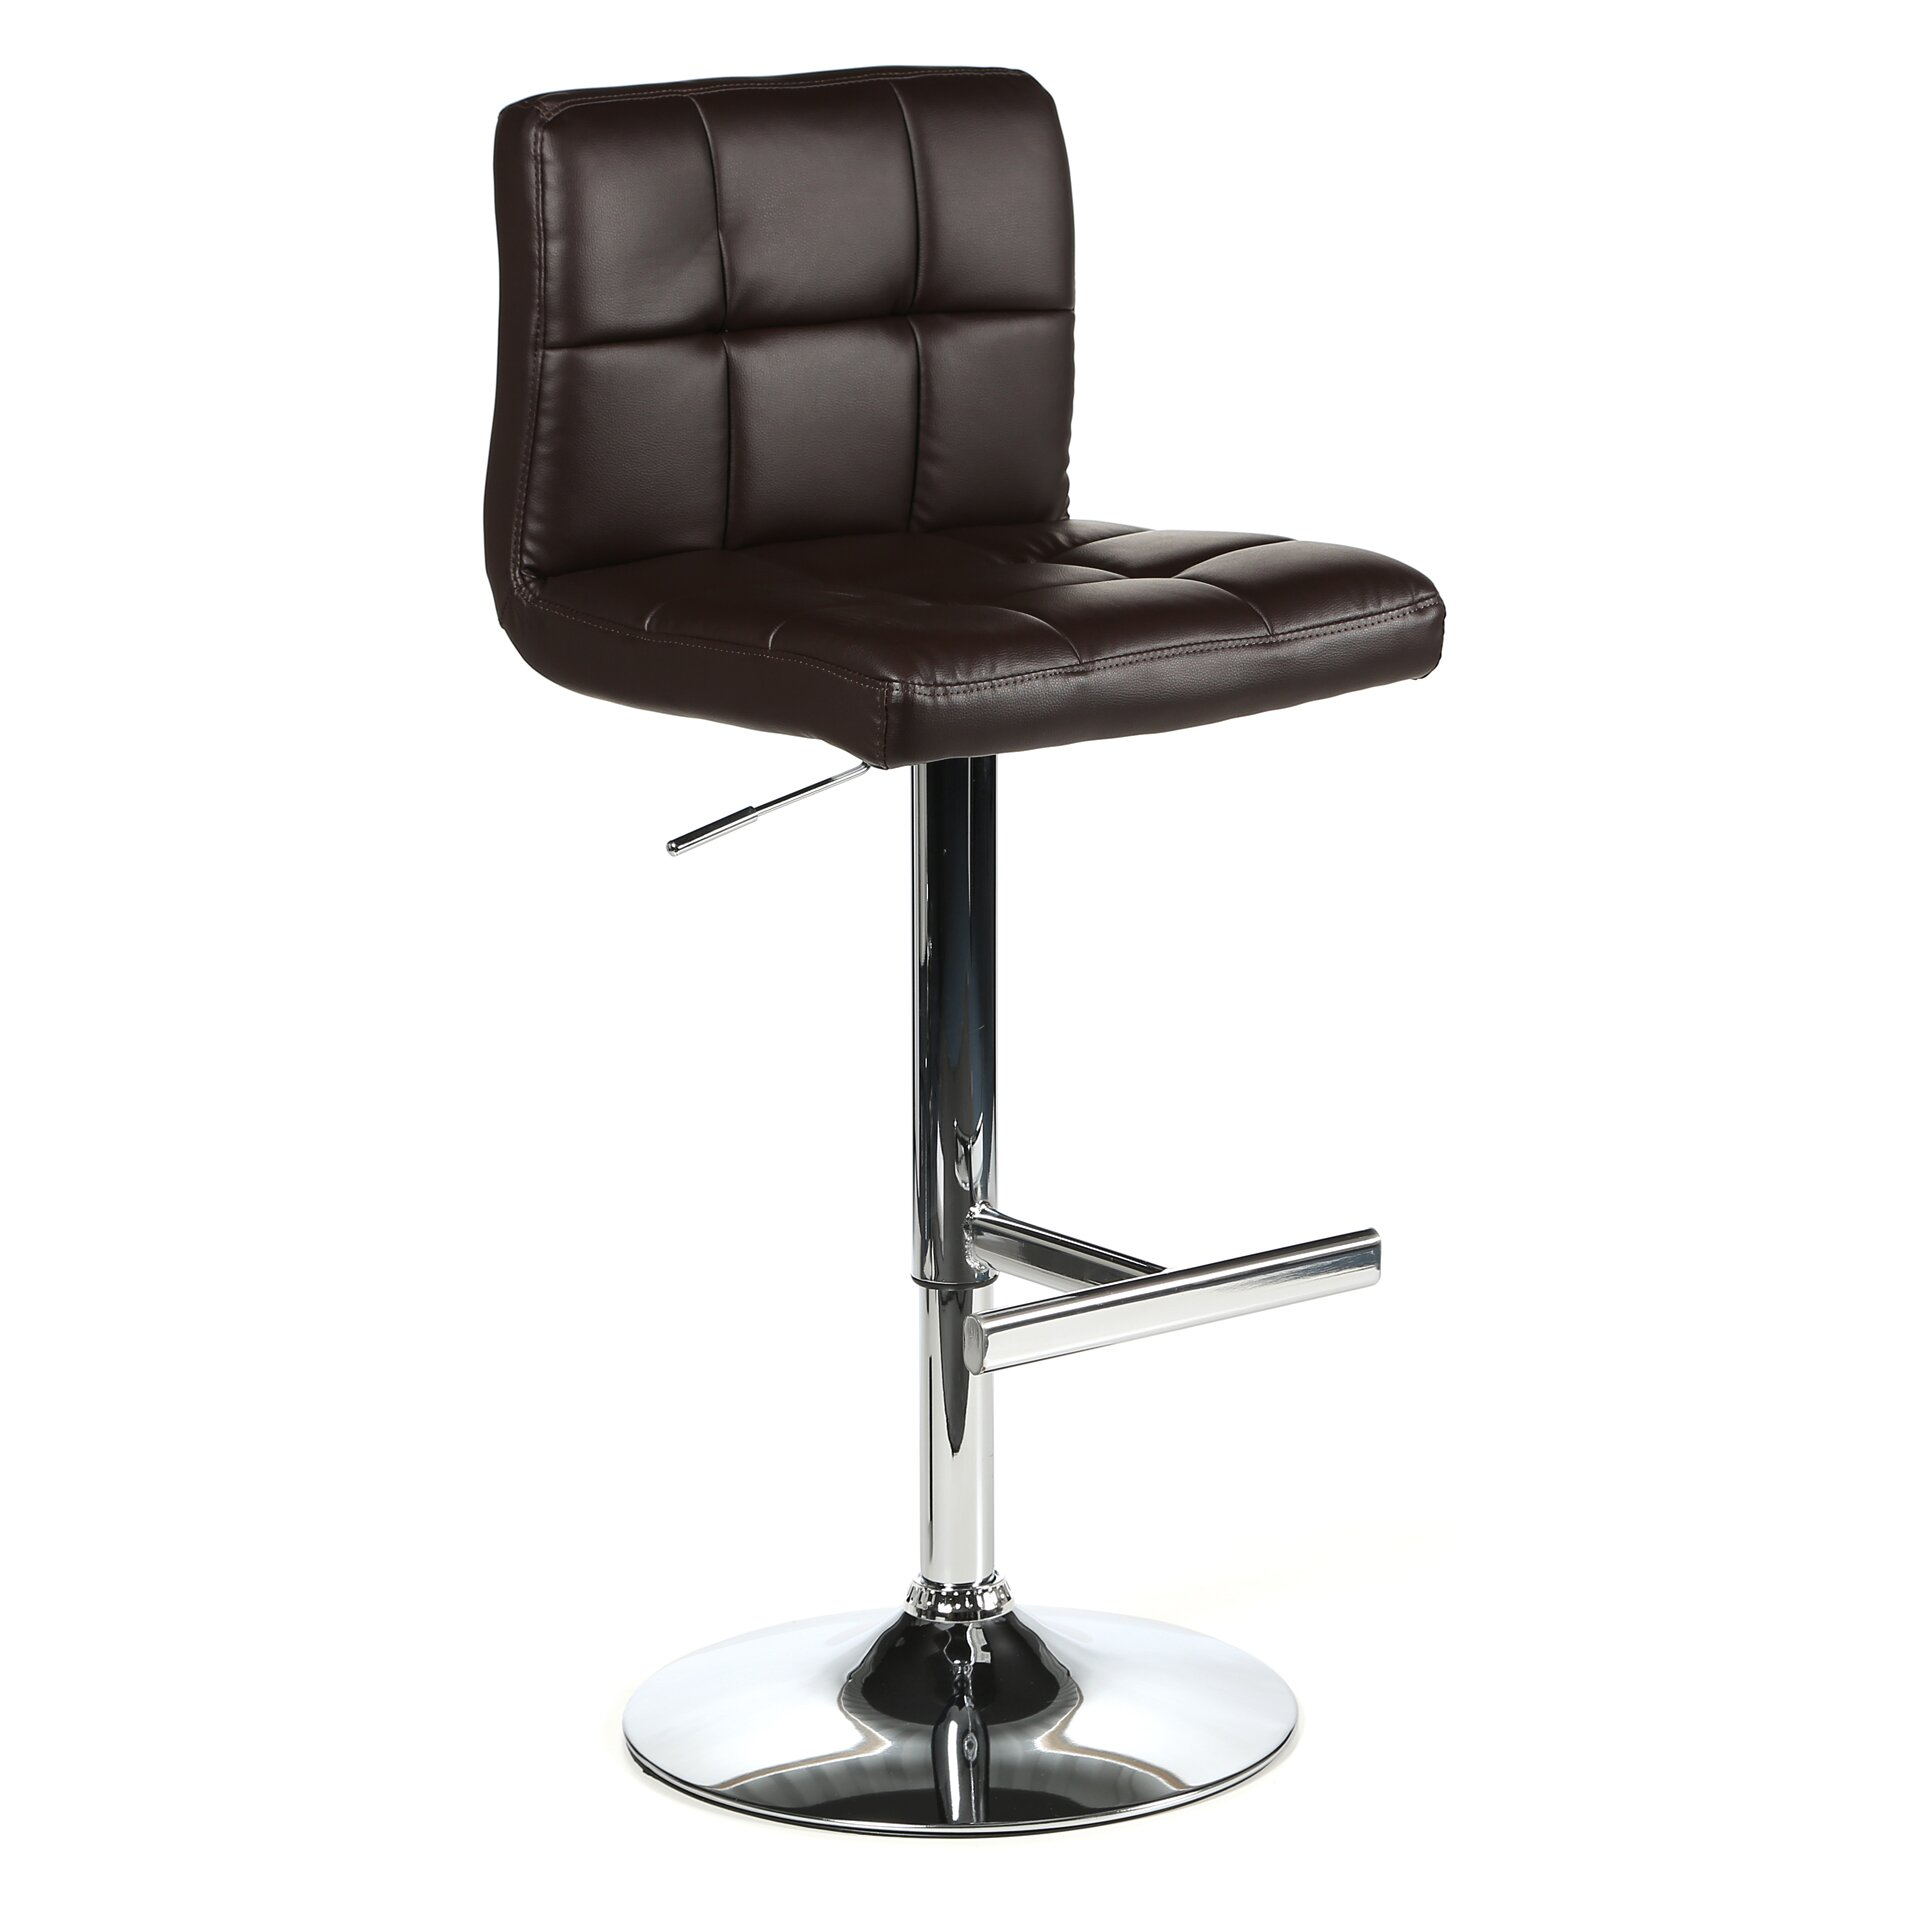 Wade Logan Romeo Adjustable Height Swivel Bar Stool